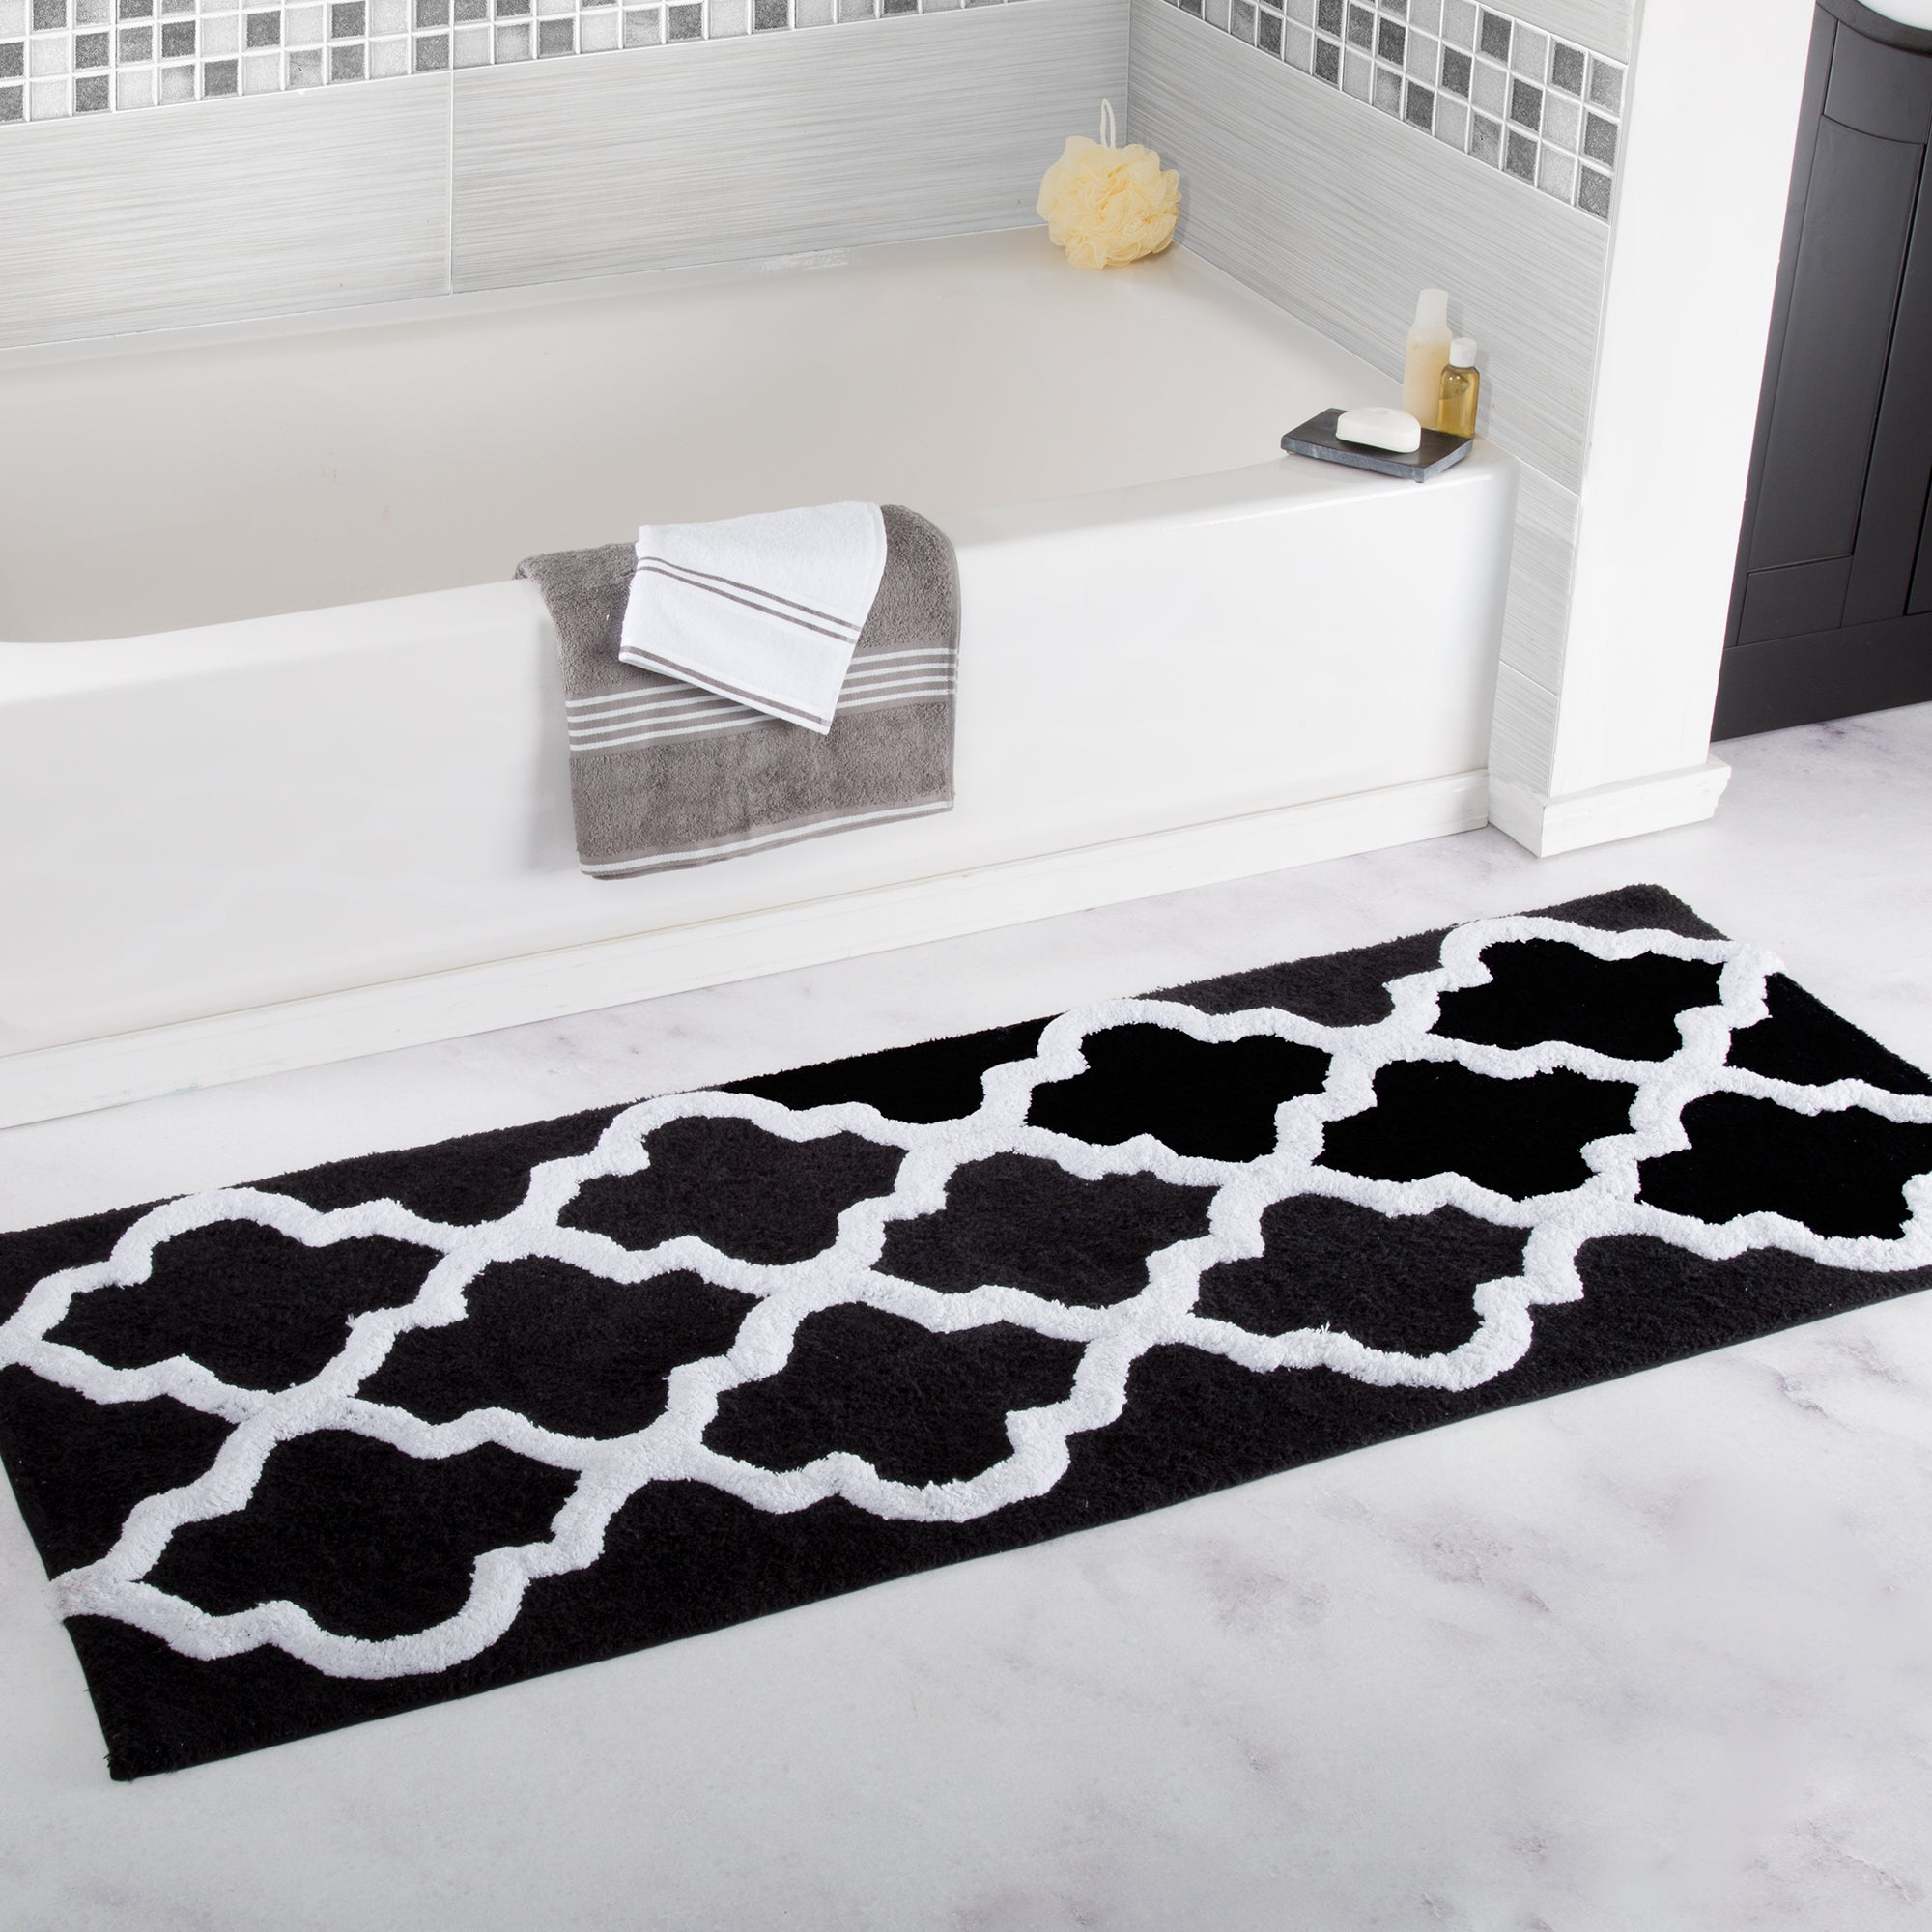 Shop Windsor Home 100% Cotton Trellis Bathroom Runner - 24x60 inches - Free  Shipping On Orders Over  45 - Overstock - 17333391 18f2daf64